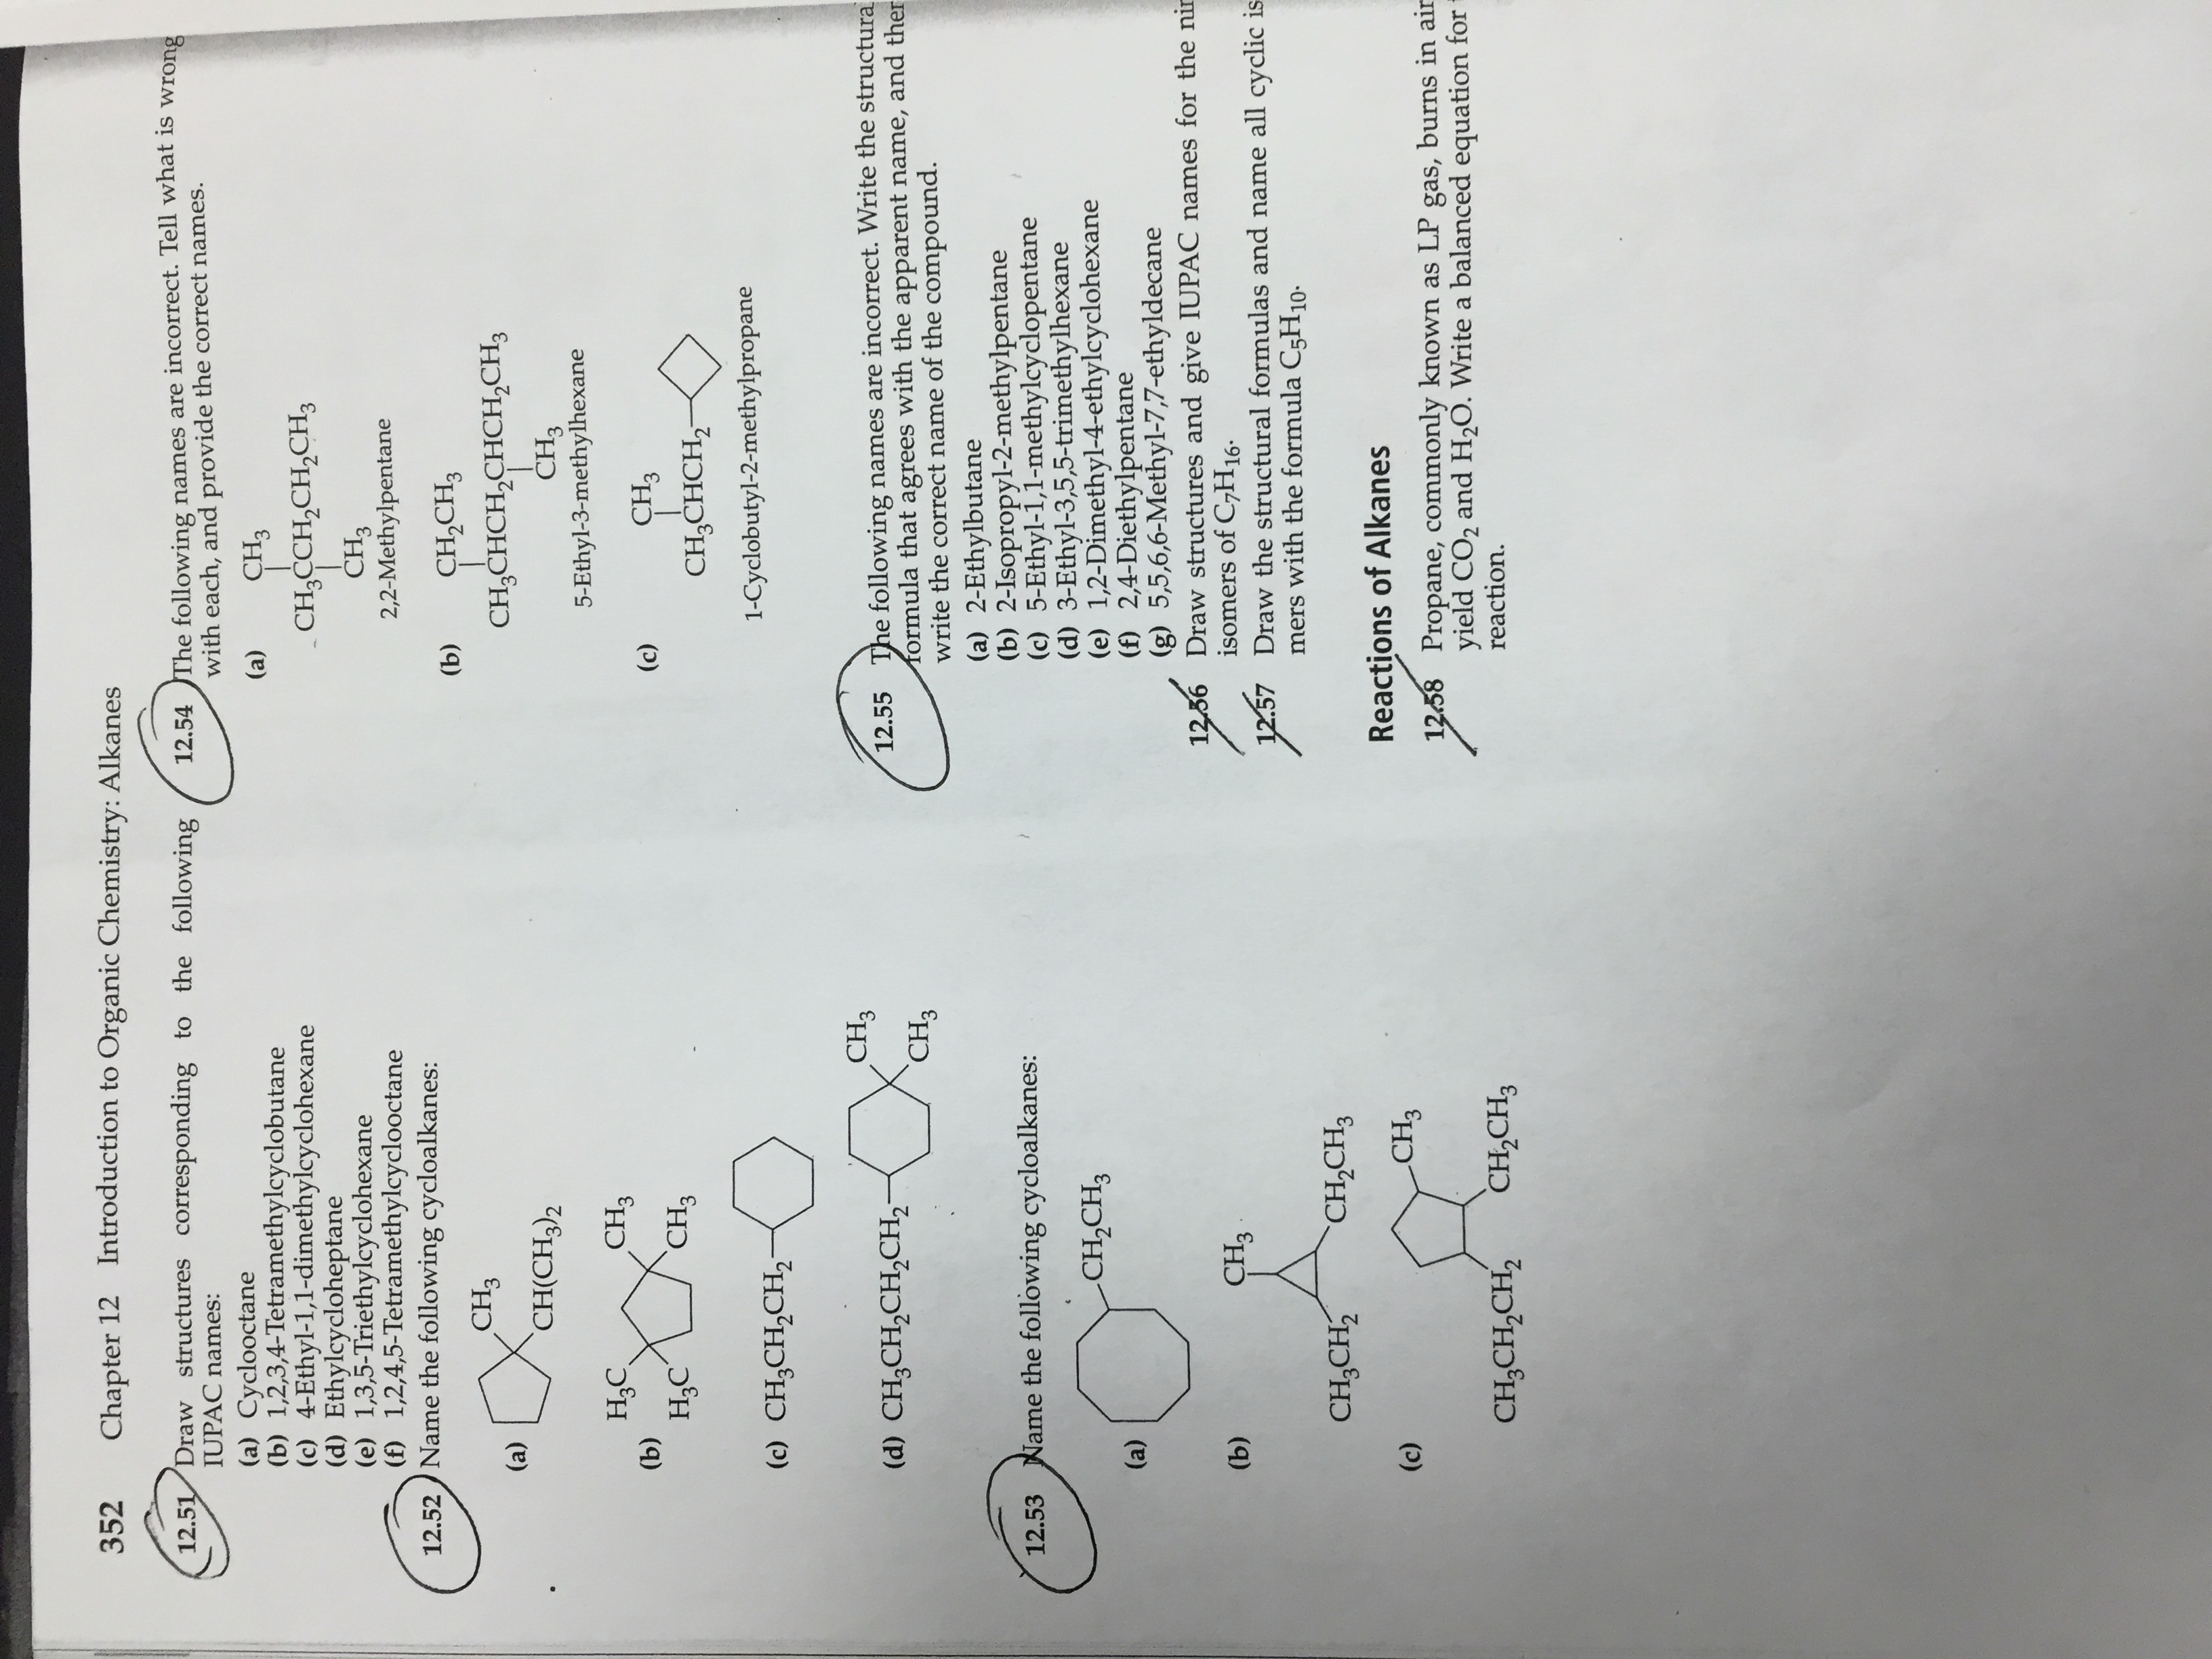 an organic chemistry project about saturated Food chemistry experiments - unit 2: lipids subject: teacher activity guide created date: 6/12/2002 3:35:18 am.